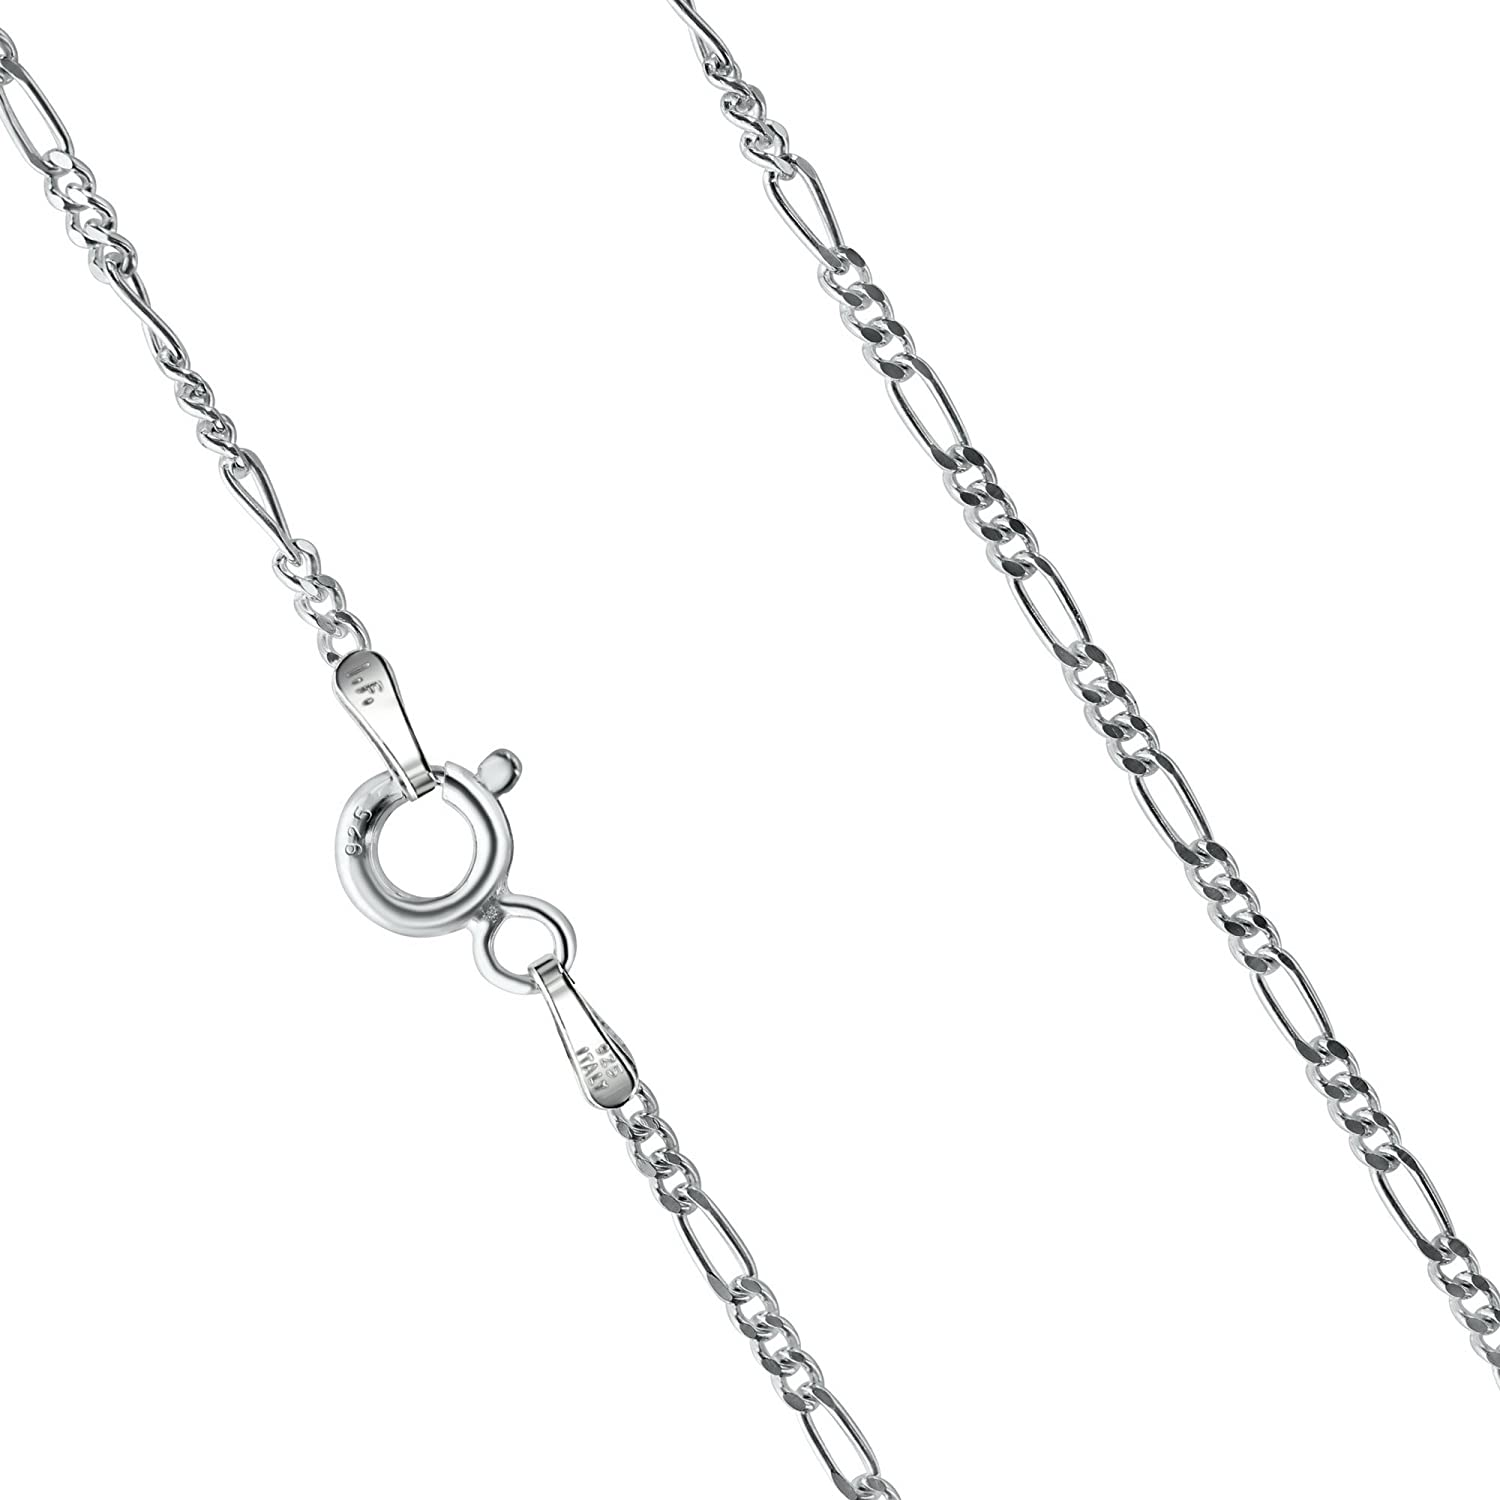 925 Sterling Silver Valter Chain Necklace 6.6 mm 18-32 Solid Silver Chain 925 Sterling Silver Chain Optional Gold or Rhodium Plated